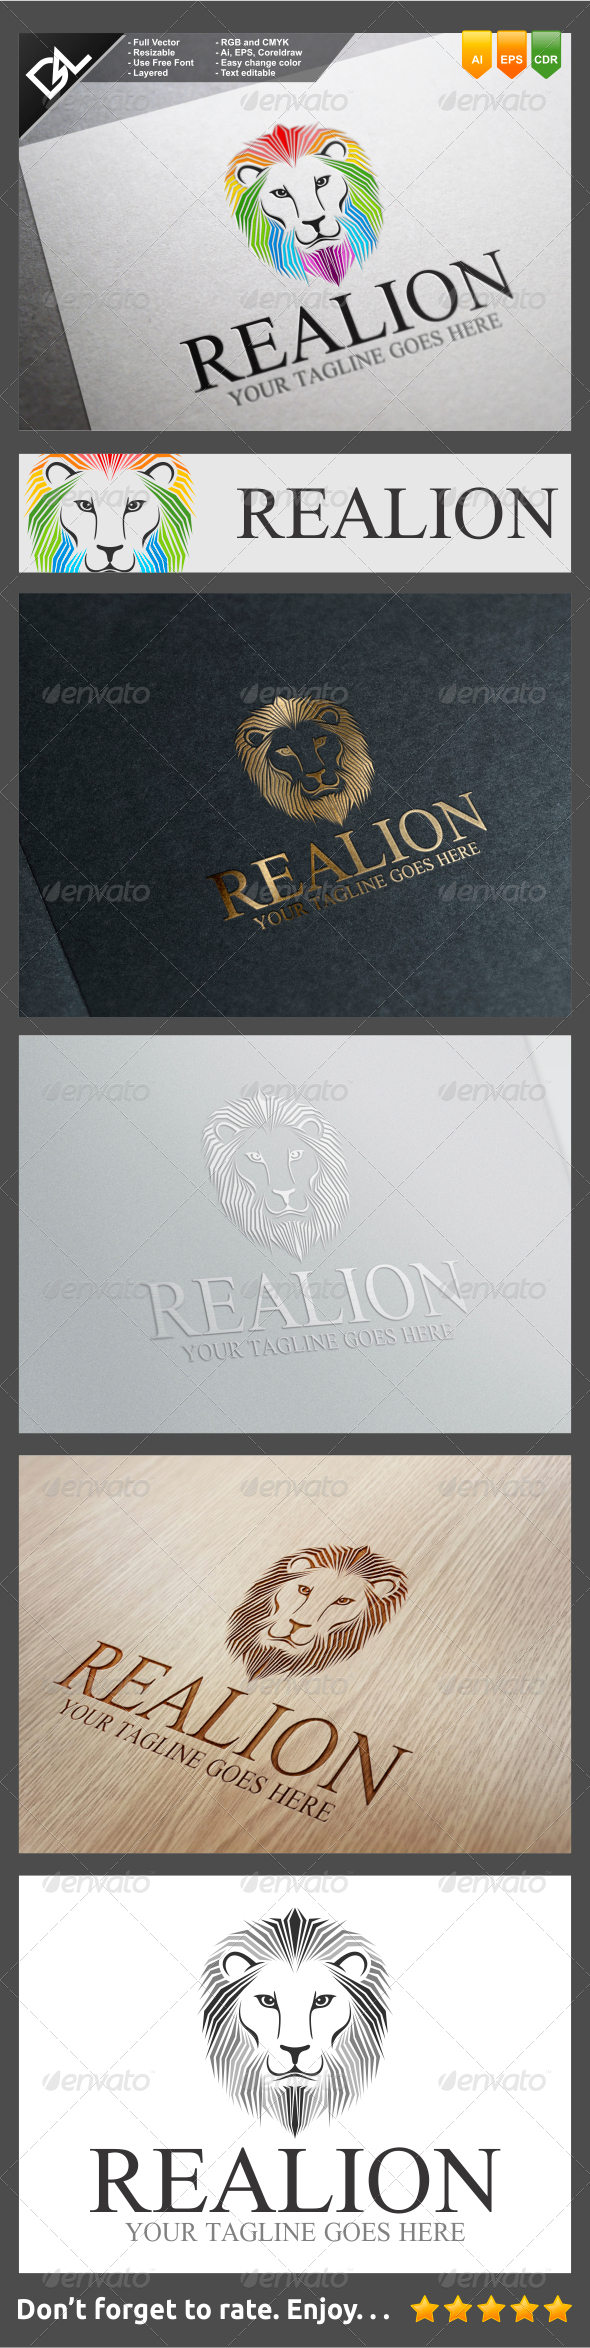 GraphicRiver Realion 8232078